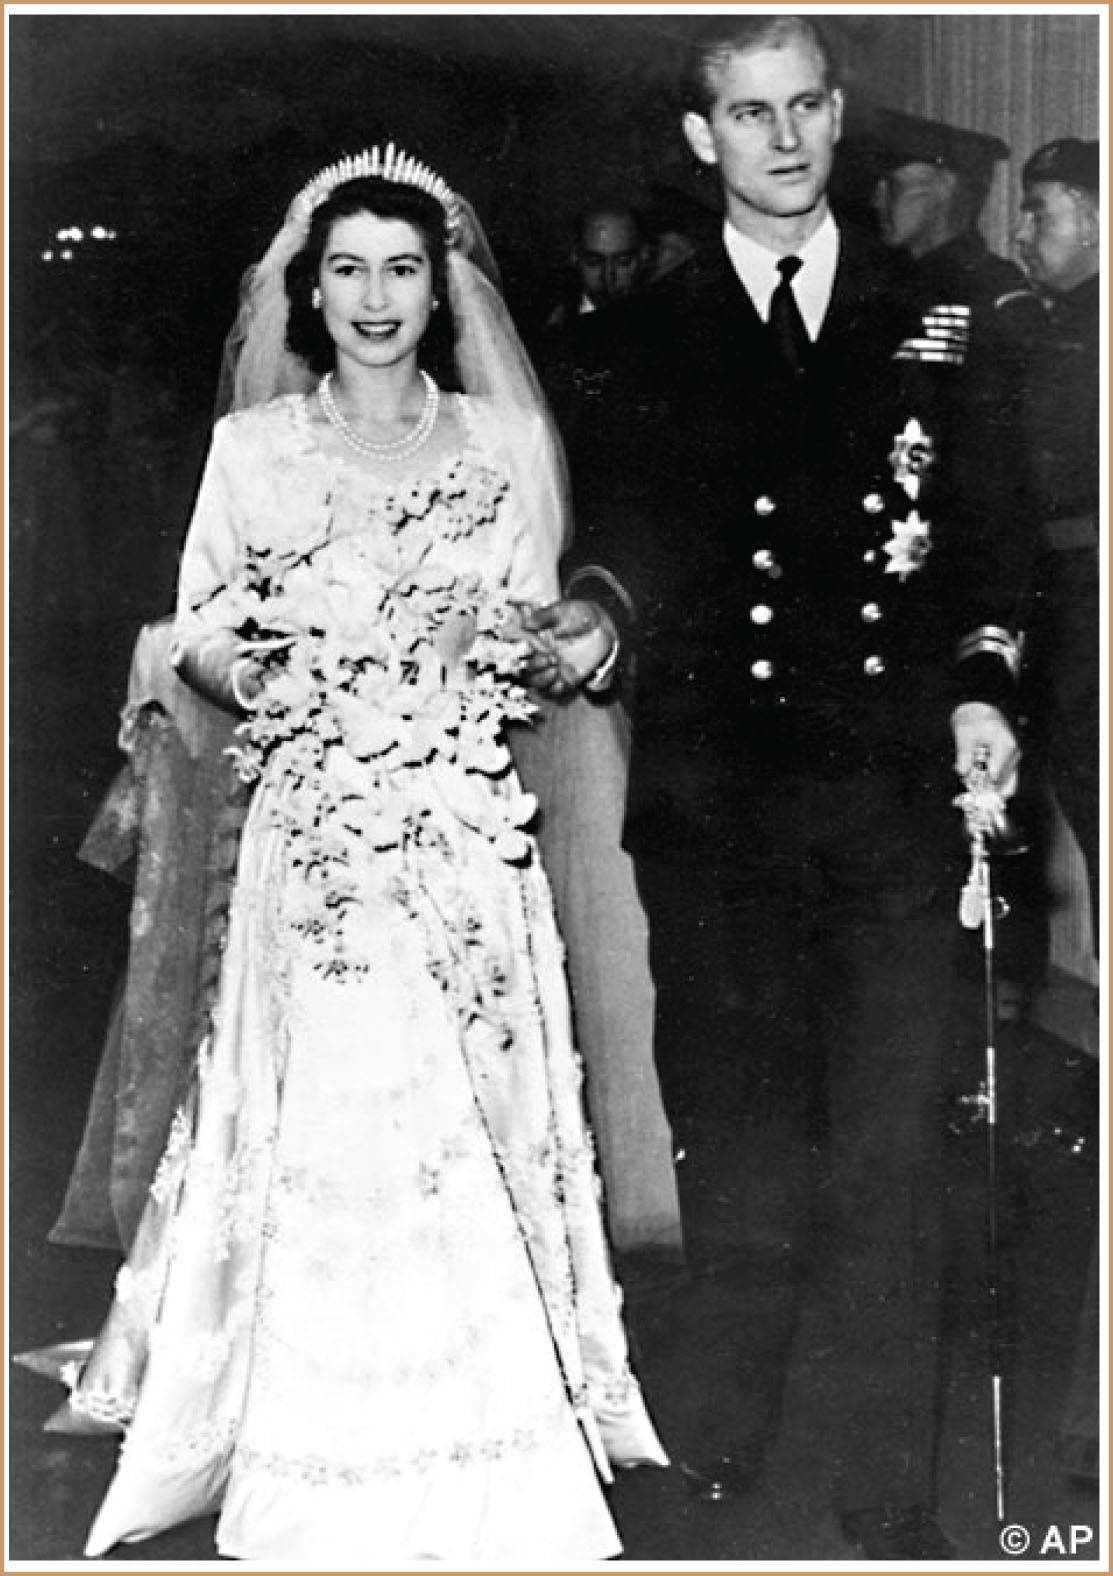 The Queen Mother Marriage